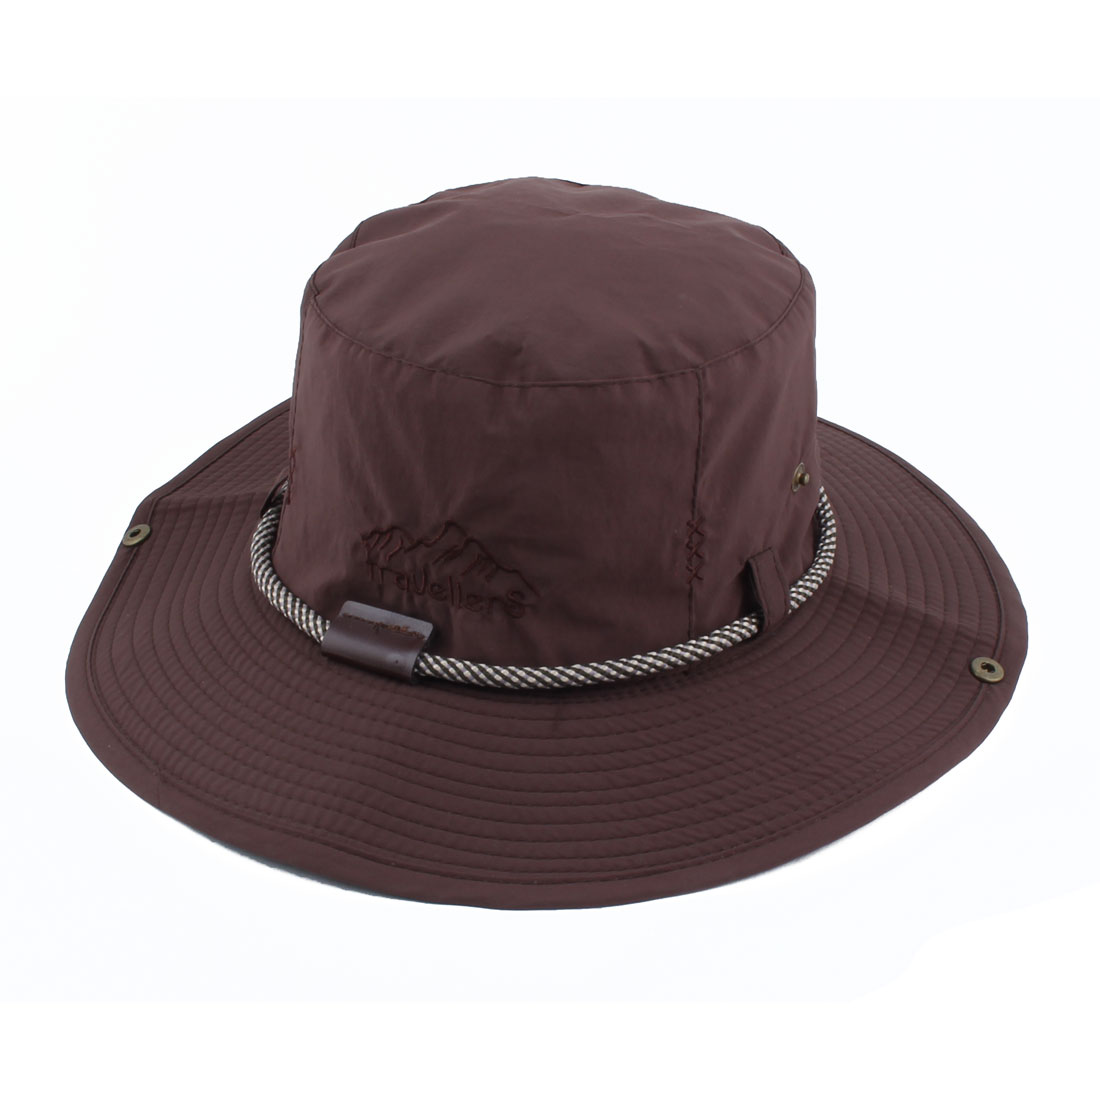 Fisherman Outdoor Sports Mountaineering Hunting Adjustable Strap Wide Brim Bucket Summer Cap Fishing Hat Coffee Color